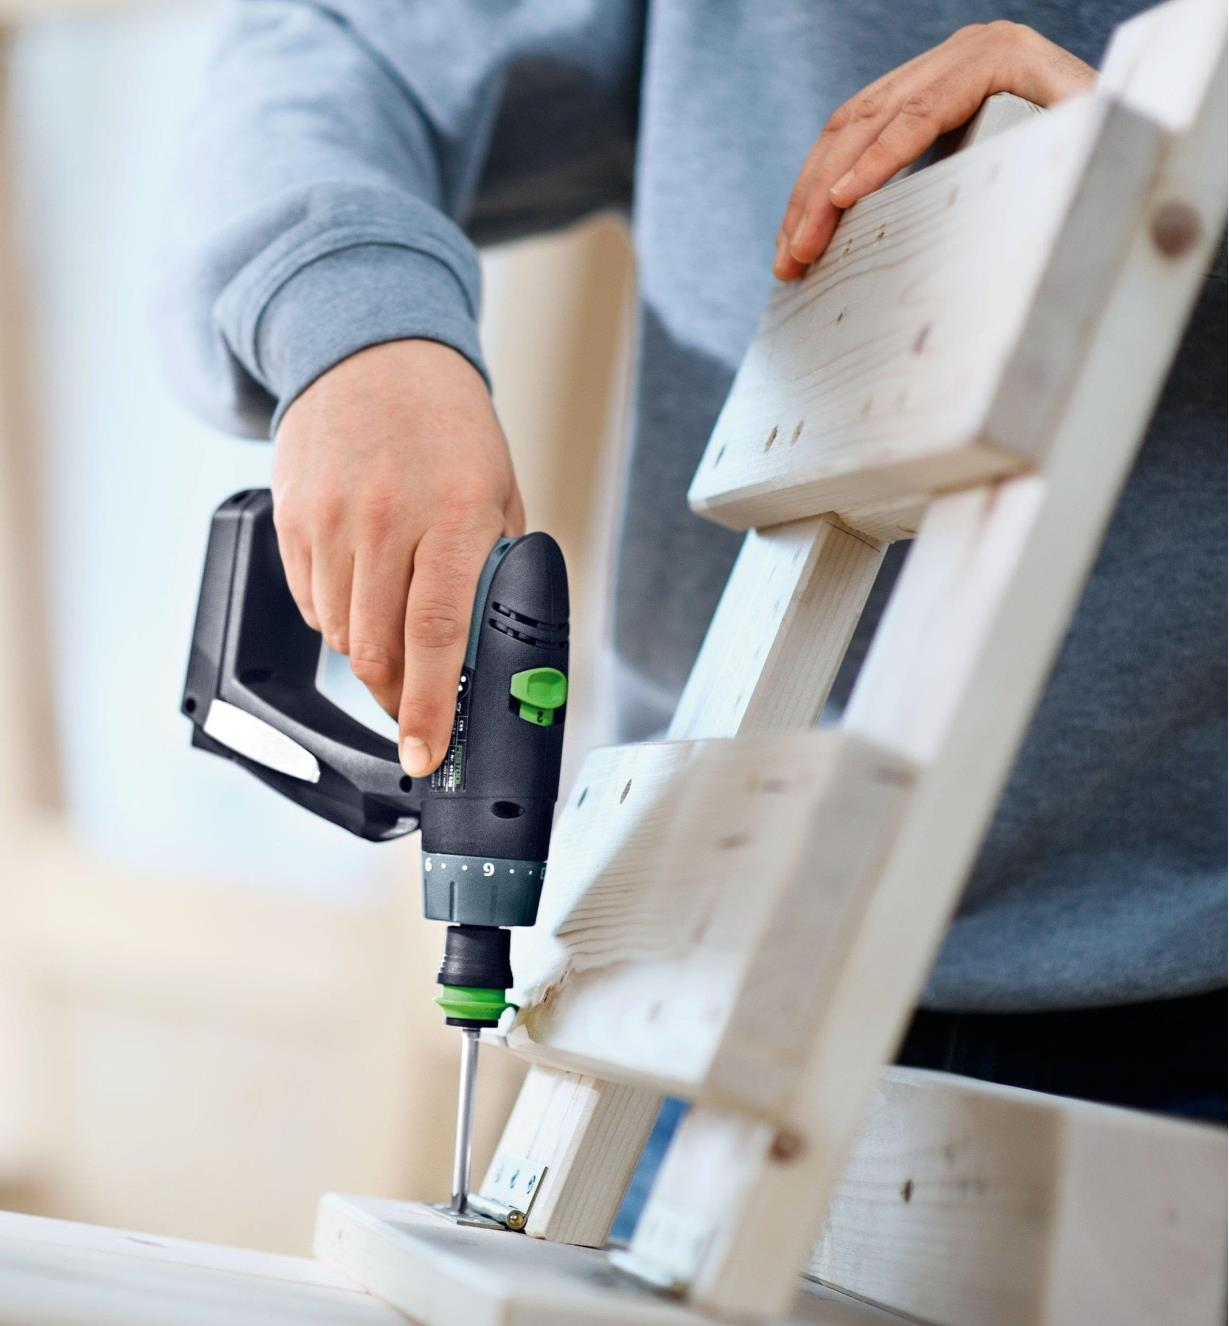 Installing a hinge using a CXS Cordless Drill to secure the screws